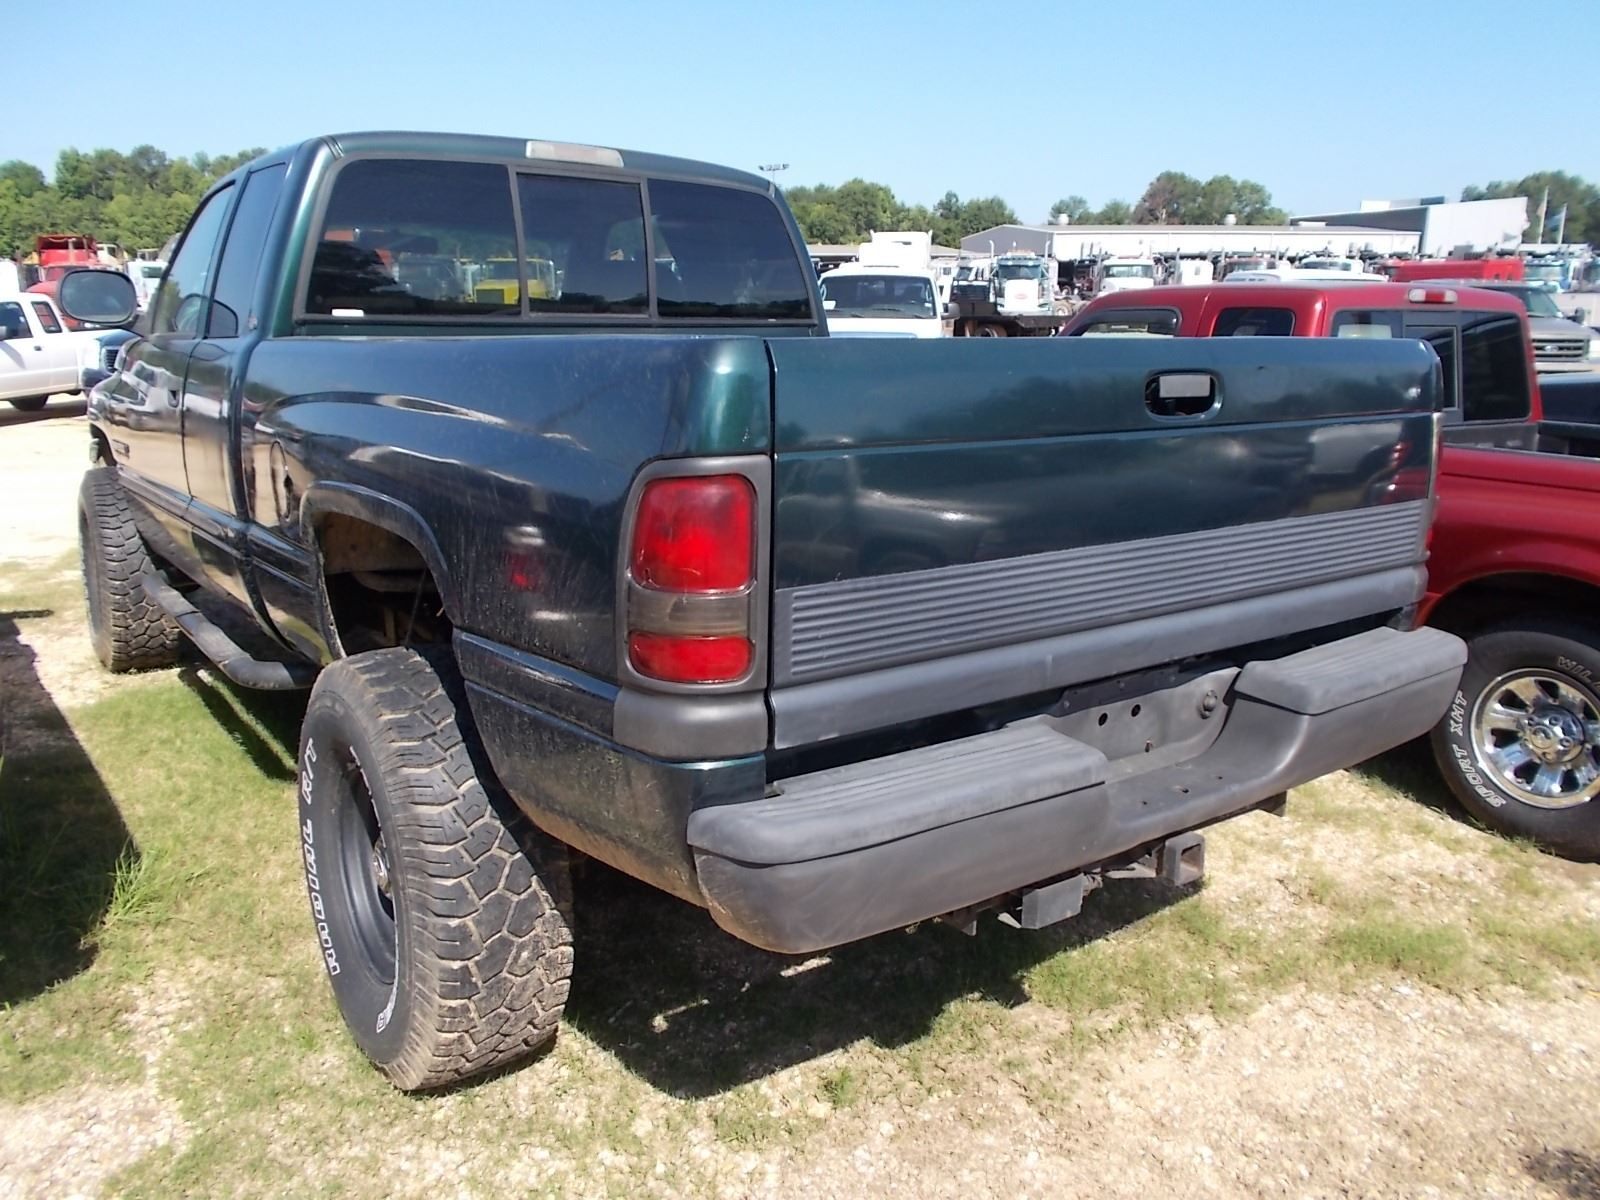 hight resolution of  image 5 2001 dodge ram 2500 pickup vin sn 3b7kf23621g710601 4x4